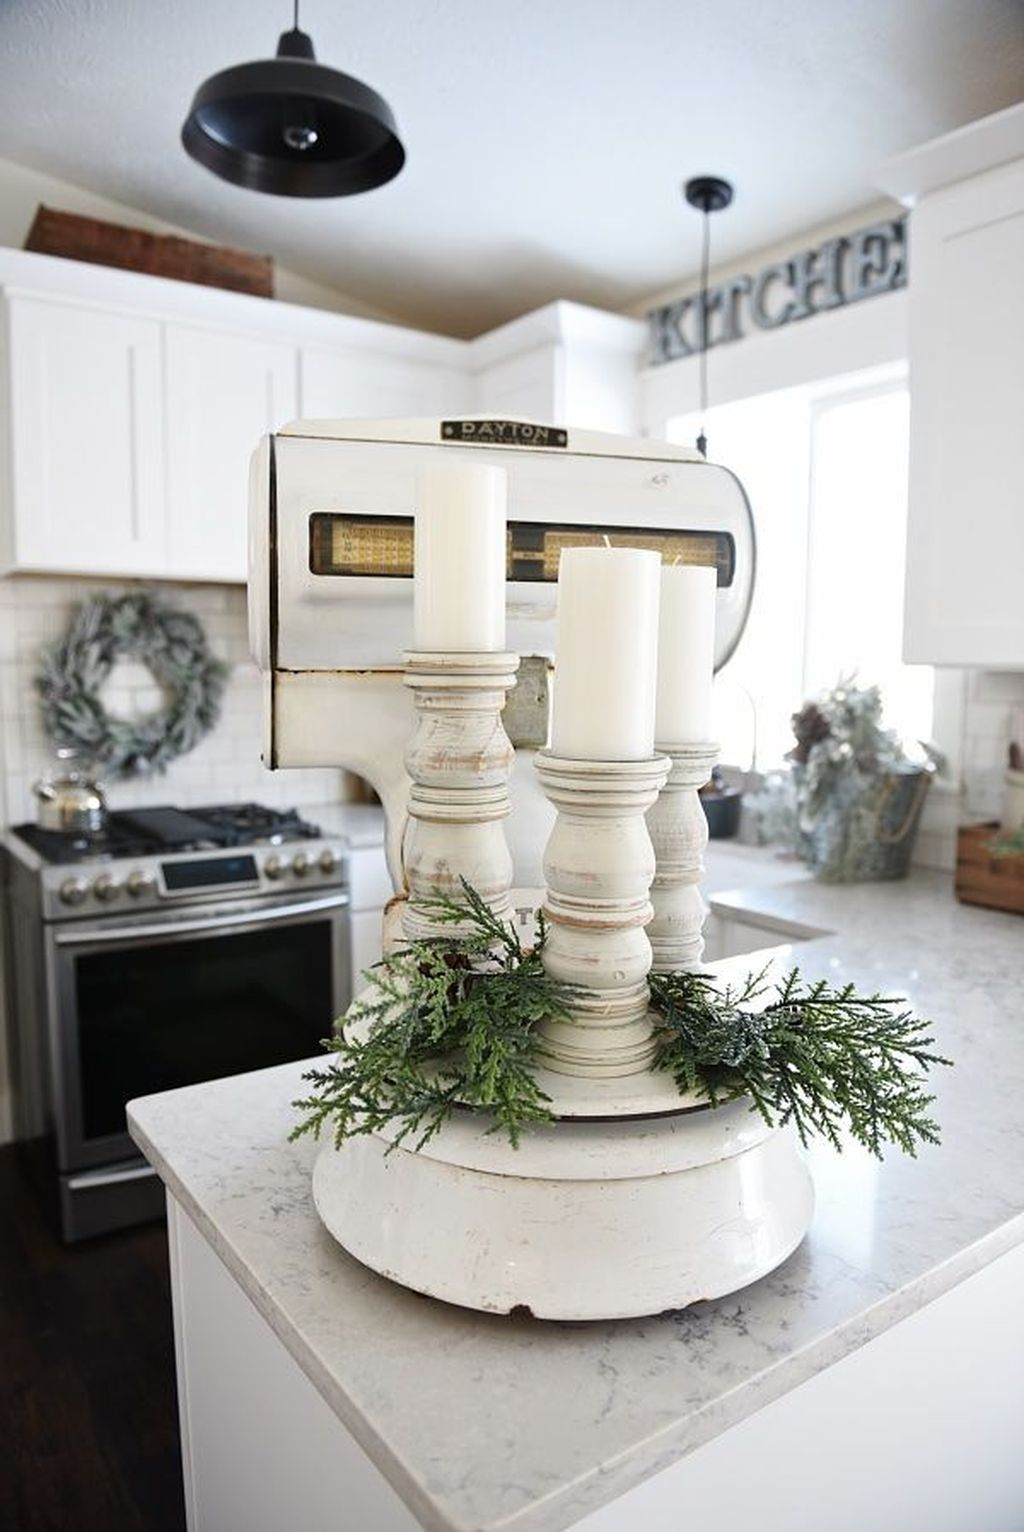 Inspiring Winter Kitchen Decor Ideas You Can Try 15